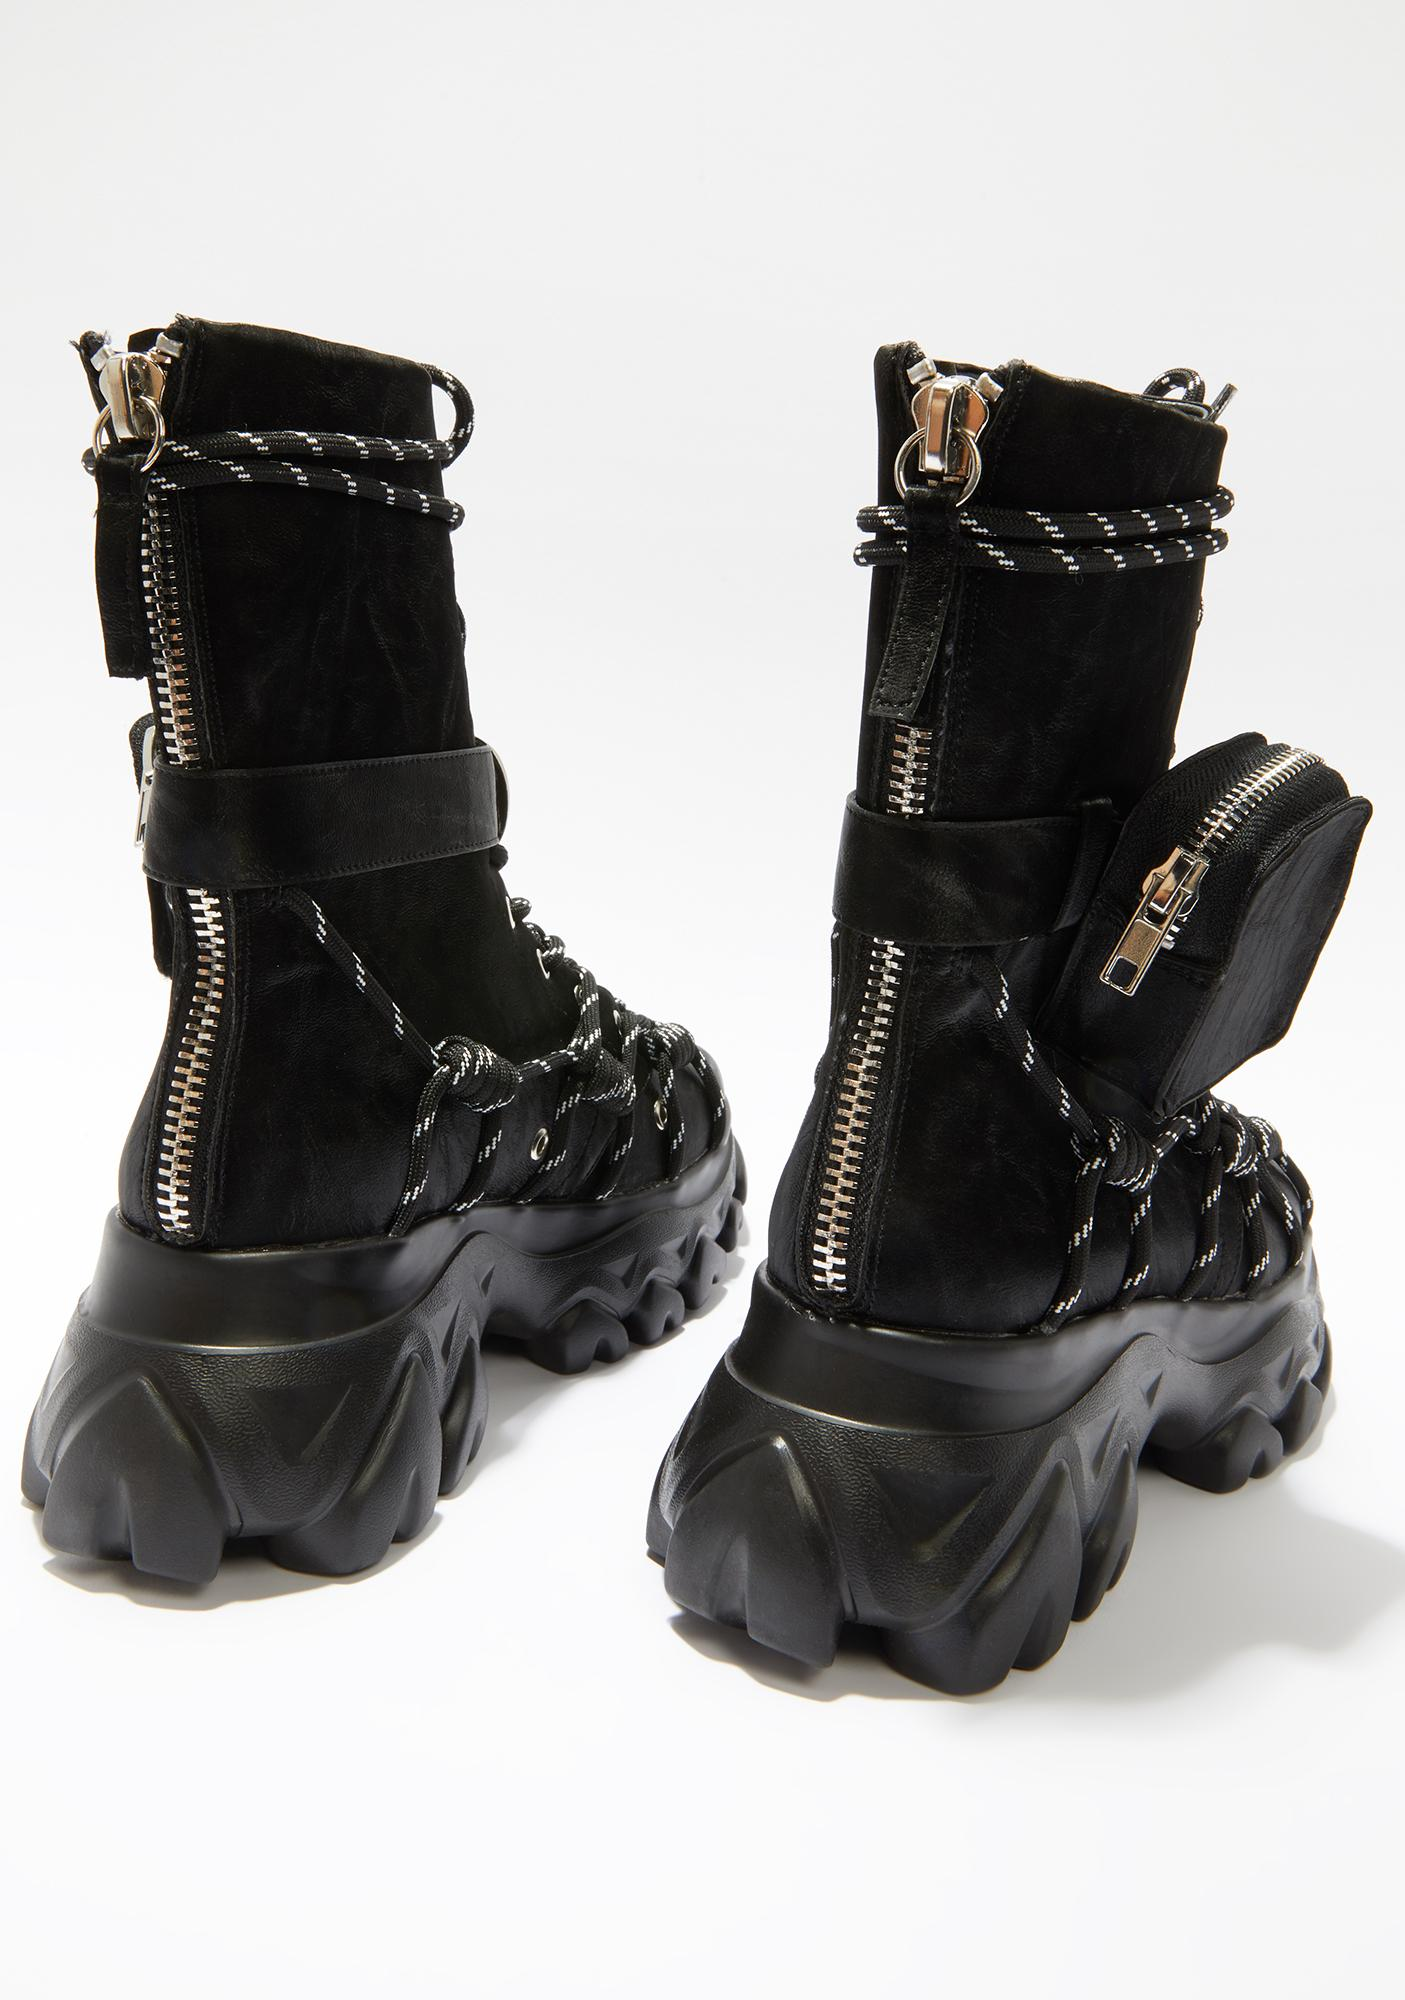 Poster Grl Like A Champ Sneaker Boots